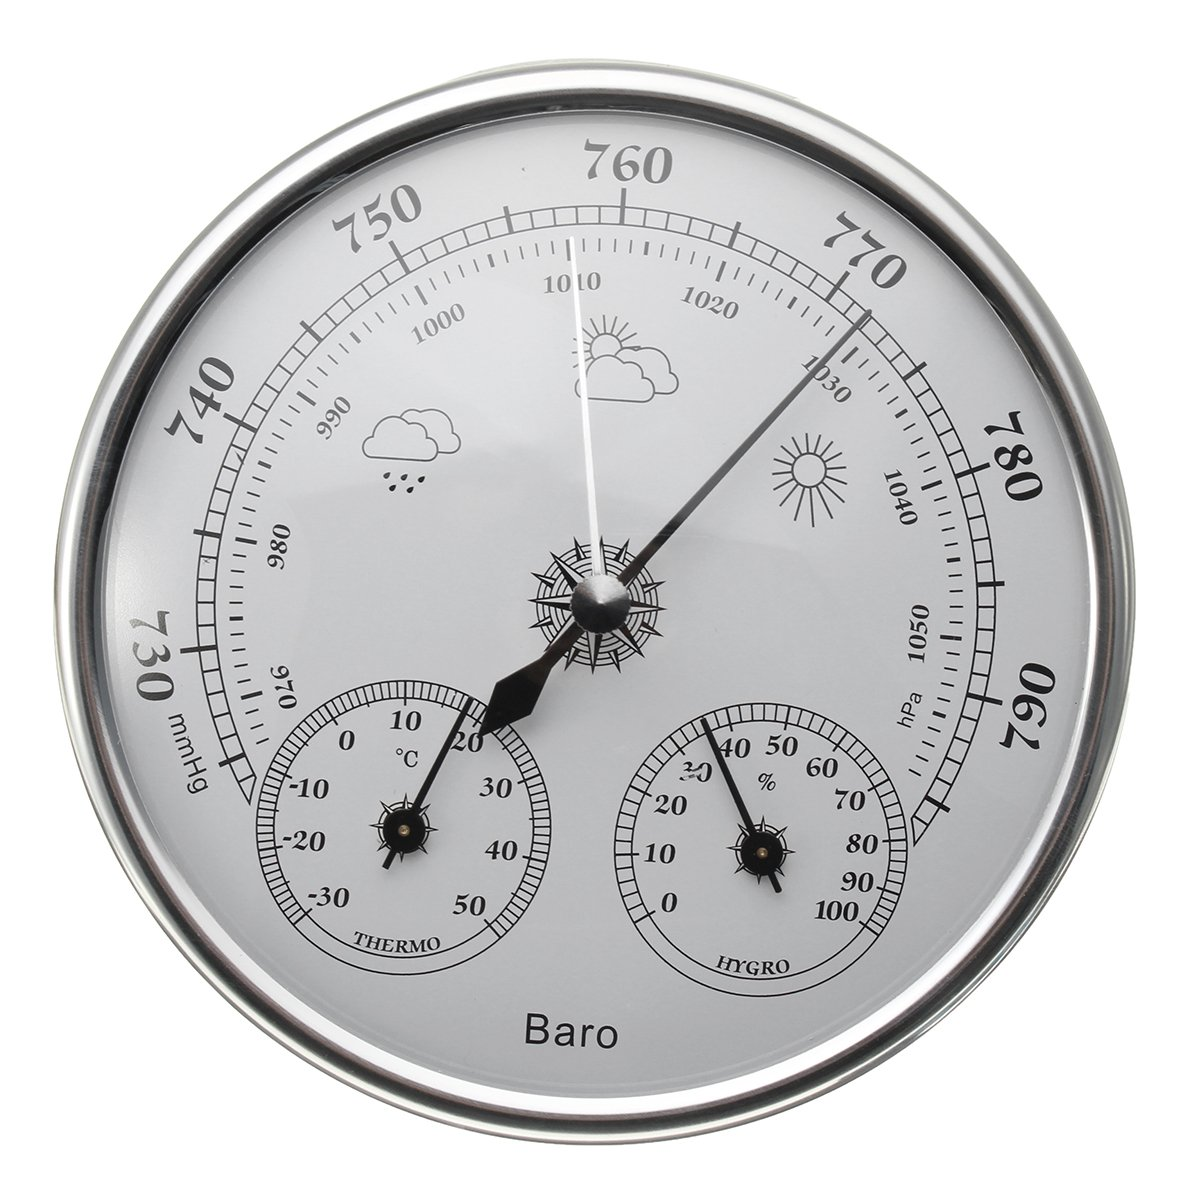 130Mm 970~1040Hpa Hanging Weather Thermometer Barometer Hygrometer \ Camping Essential Travel Gear BBQ Man Kitchen Backpacking Products Hiking Camper Park Men Outdoor Sleeping Supplies Trekking Items Generic